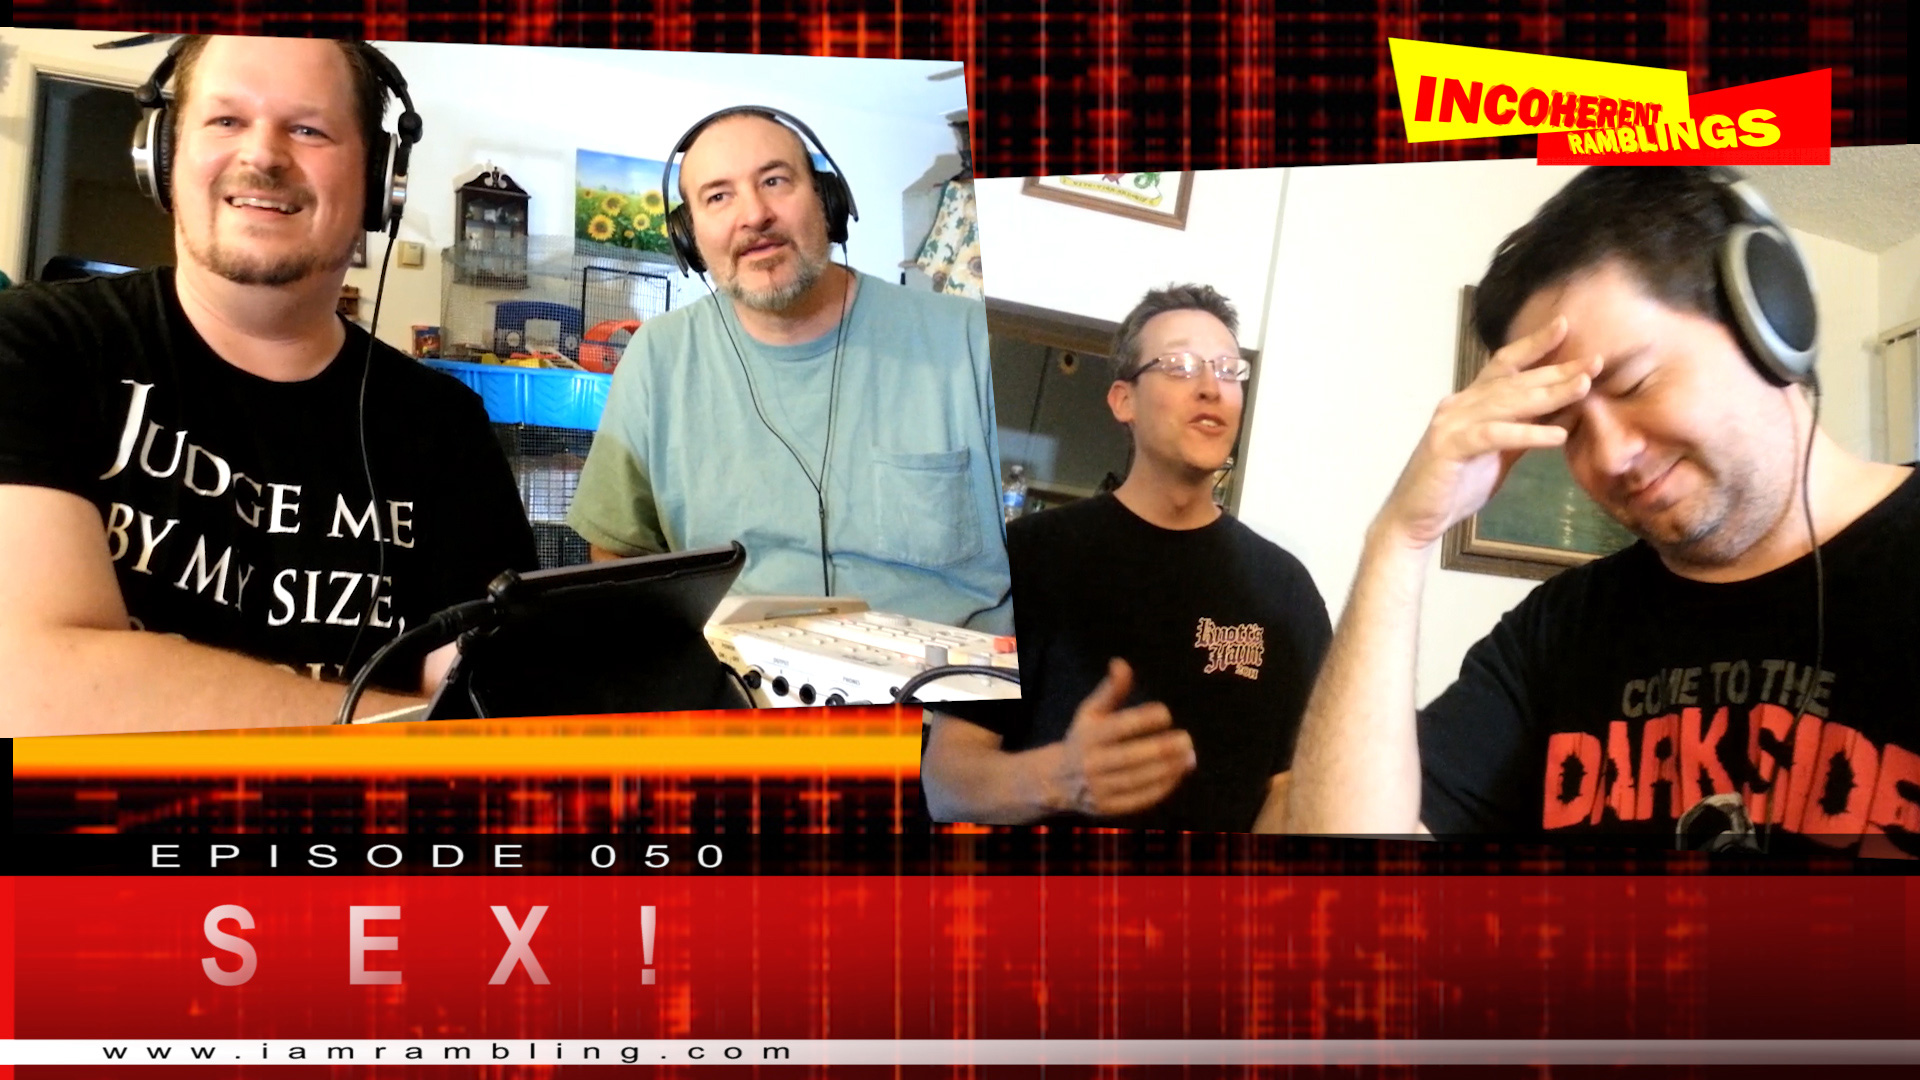 IR Video Episode 050 – Sex!